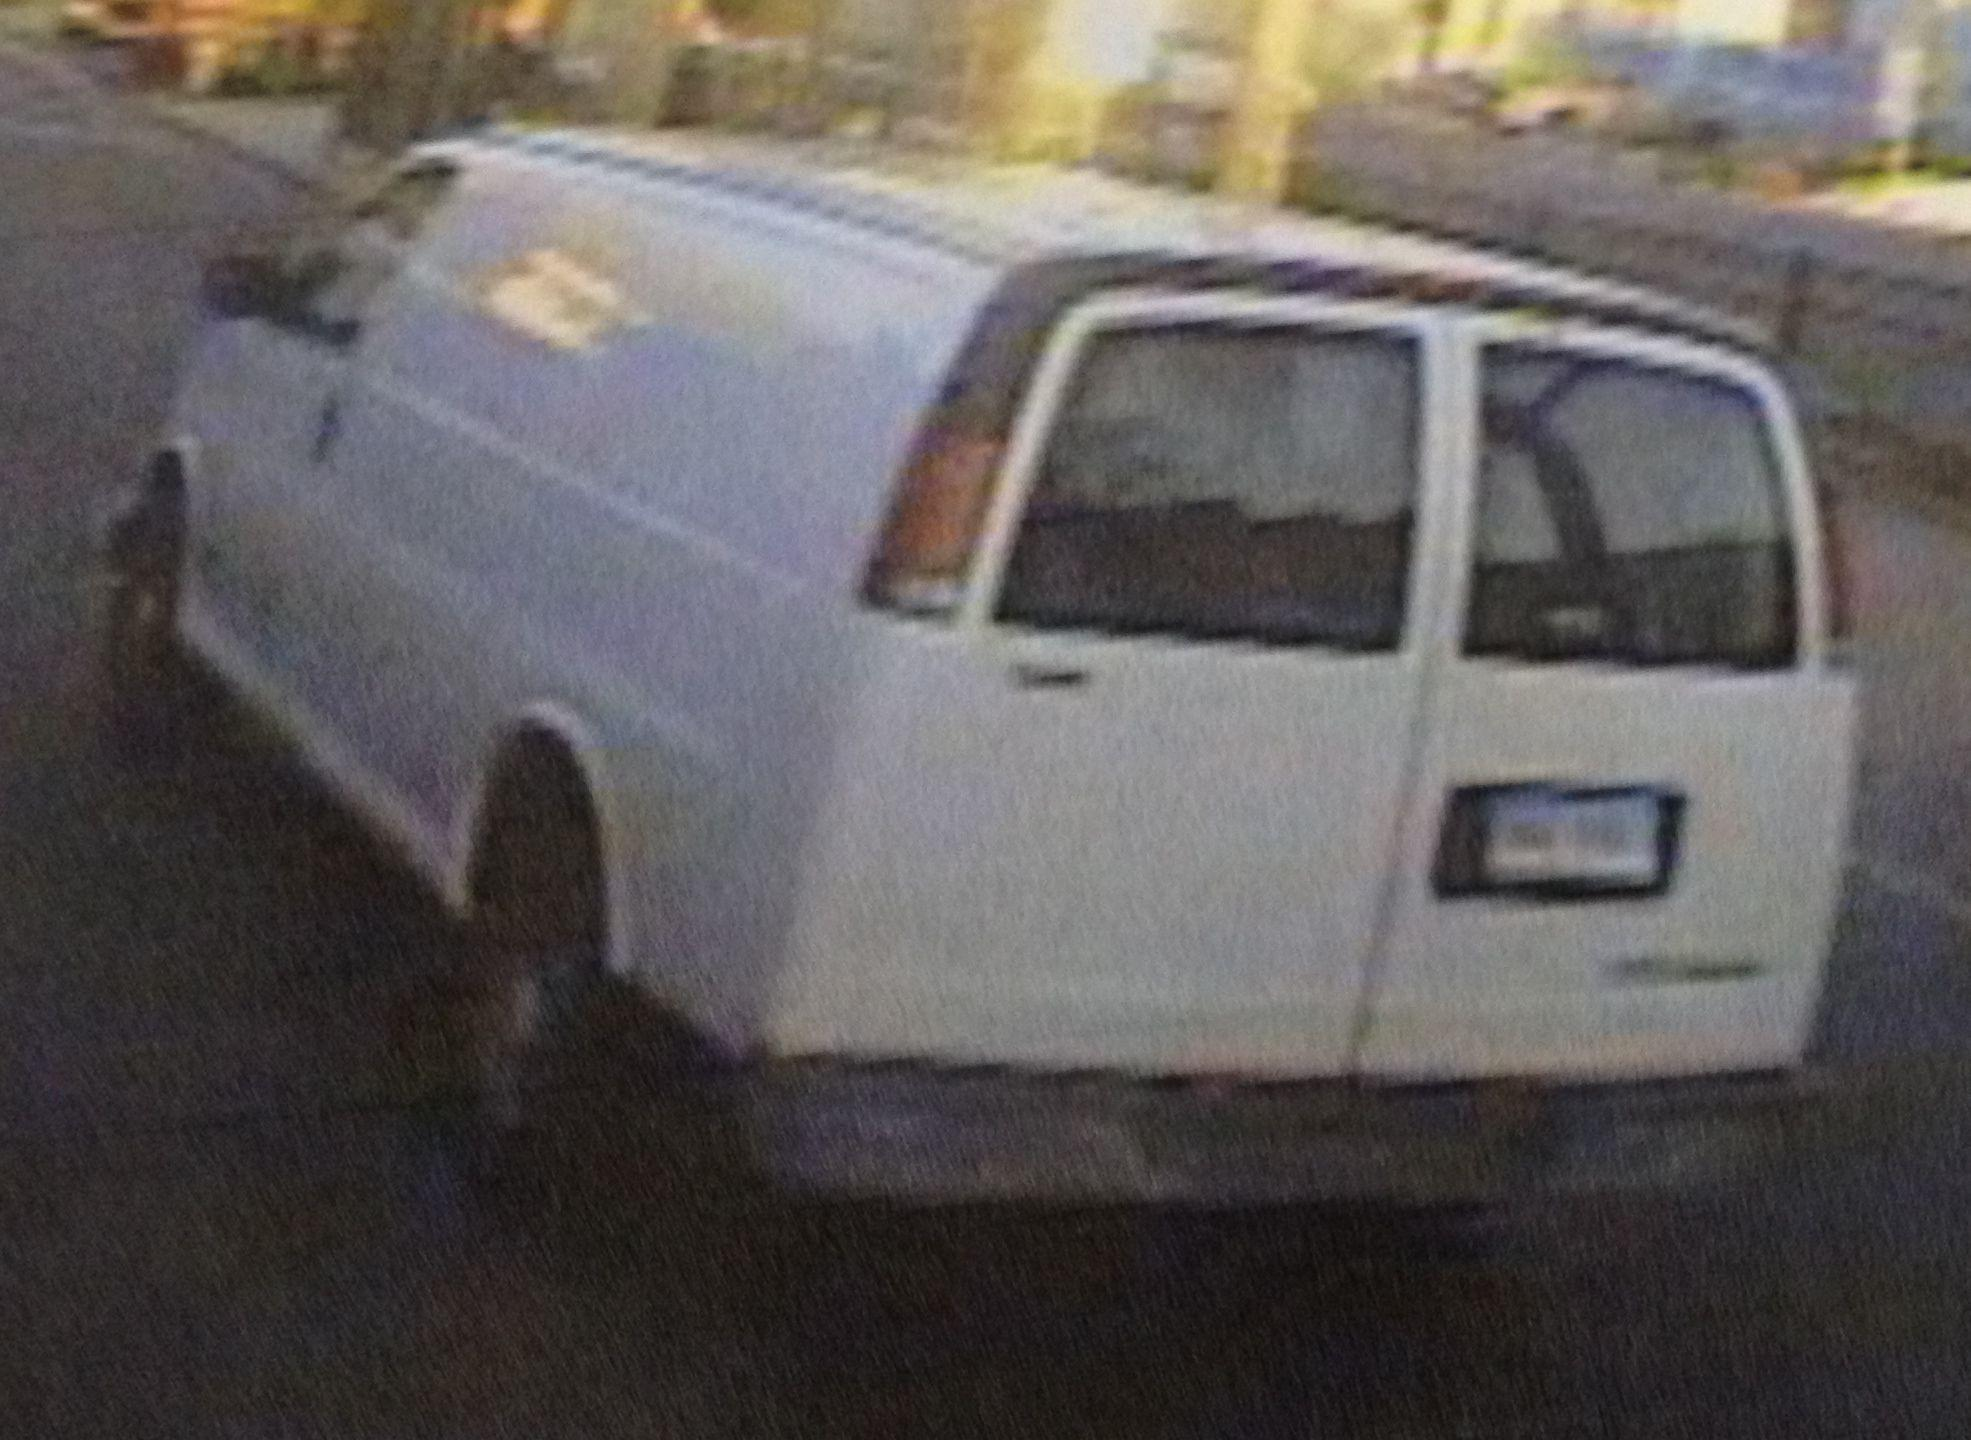 Police are seeking this white Chevrolet Express Cargo van, which they believe was involved in a hit-and-run that seriously injured an 8-year-old girl in New Haven Tuesday morning at the intersection of Ferry and Pine streets. The driver left the scene of the accident and will face felony evading charges, police said.